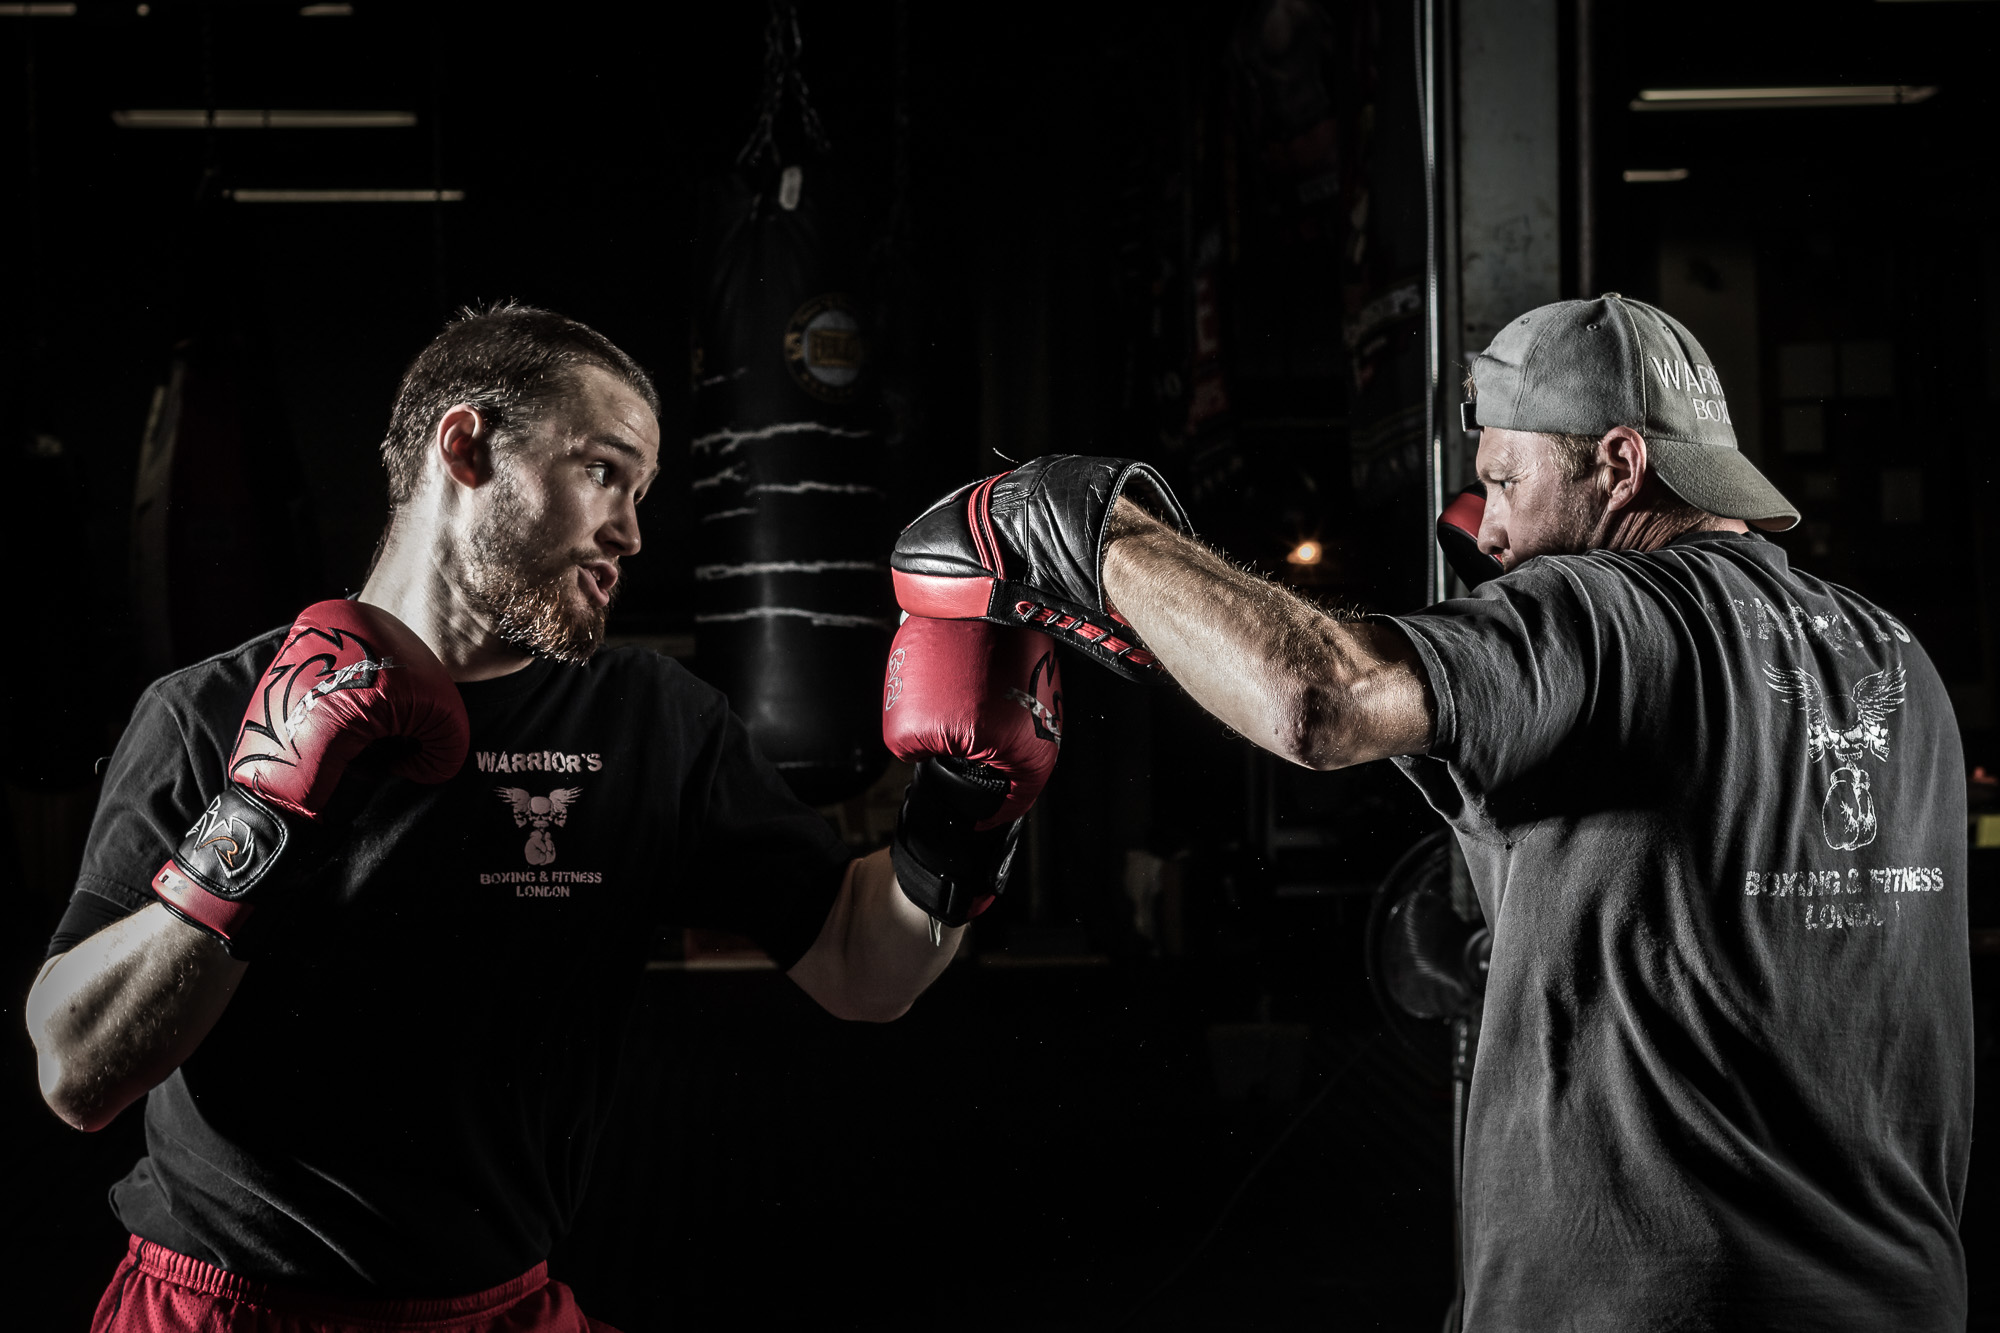 Working with trainer Rob Caron of Warrior's Boxing and Fitness